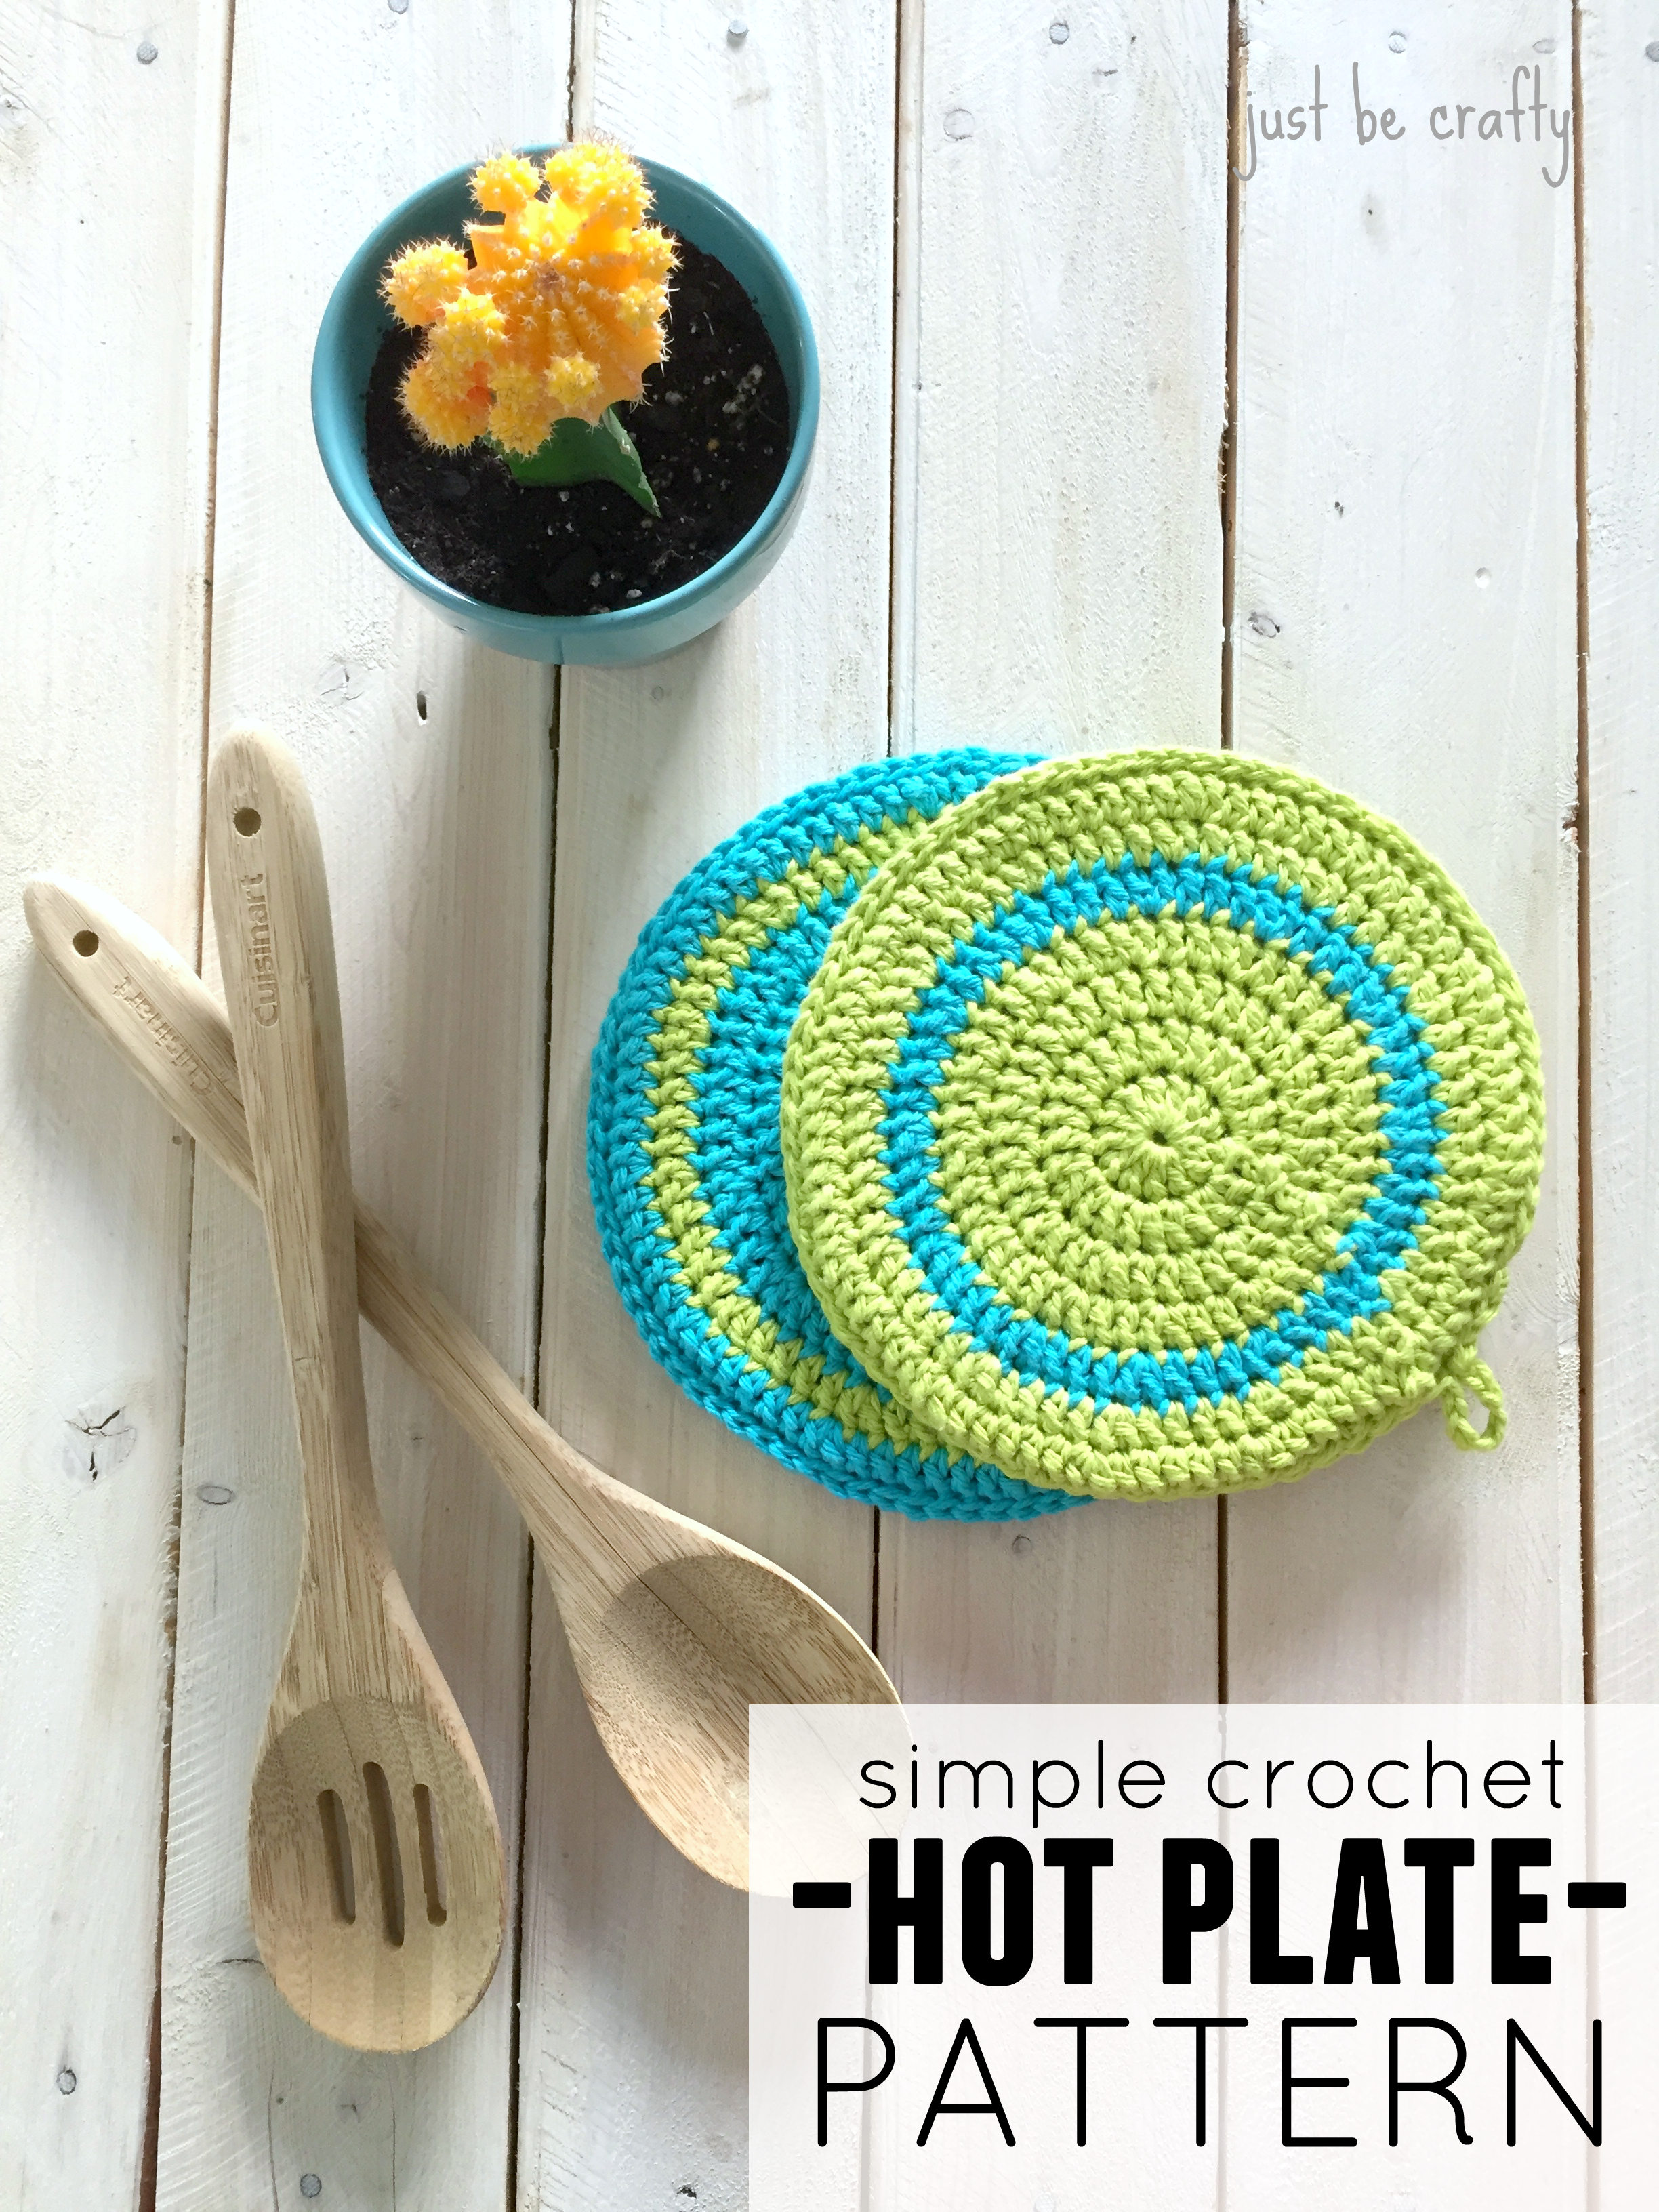 Simple Crochet Hot Plate Pattern